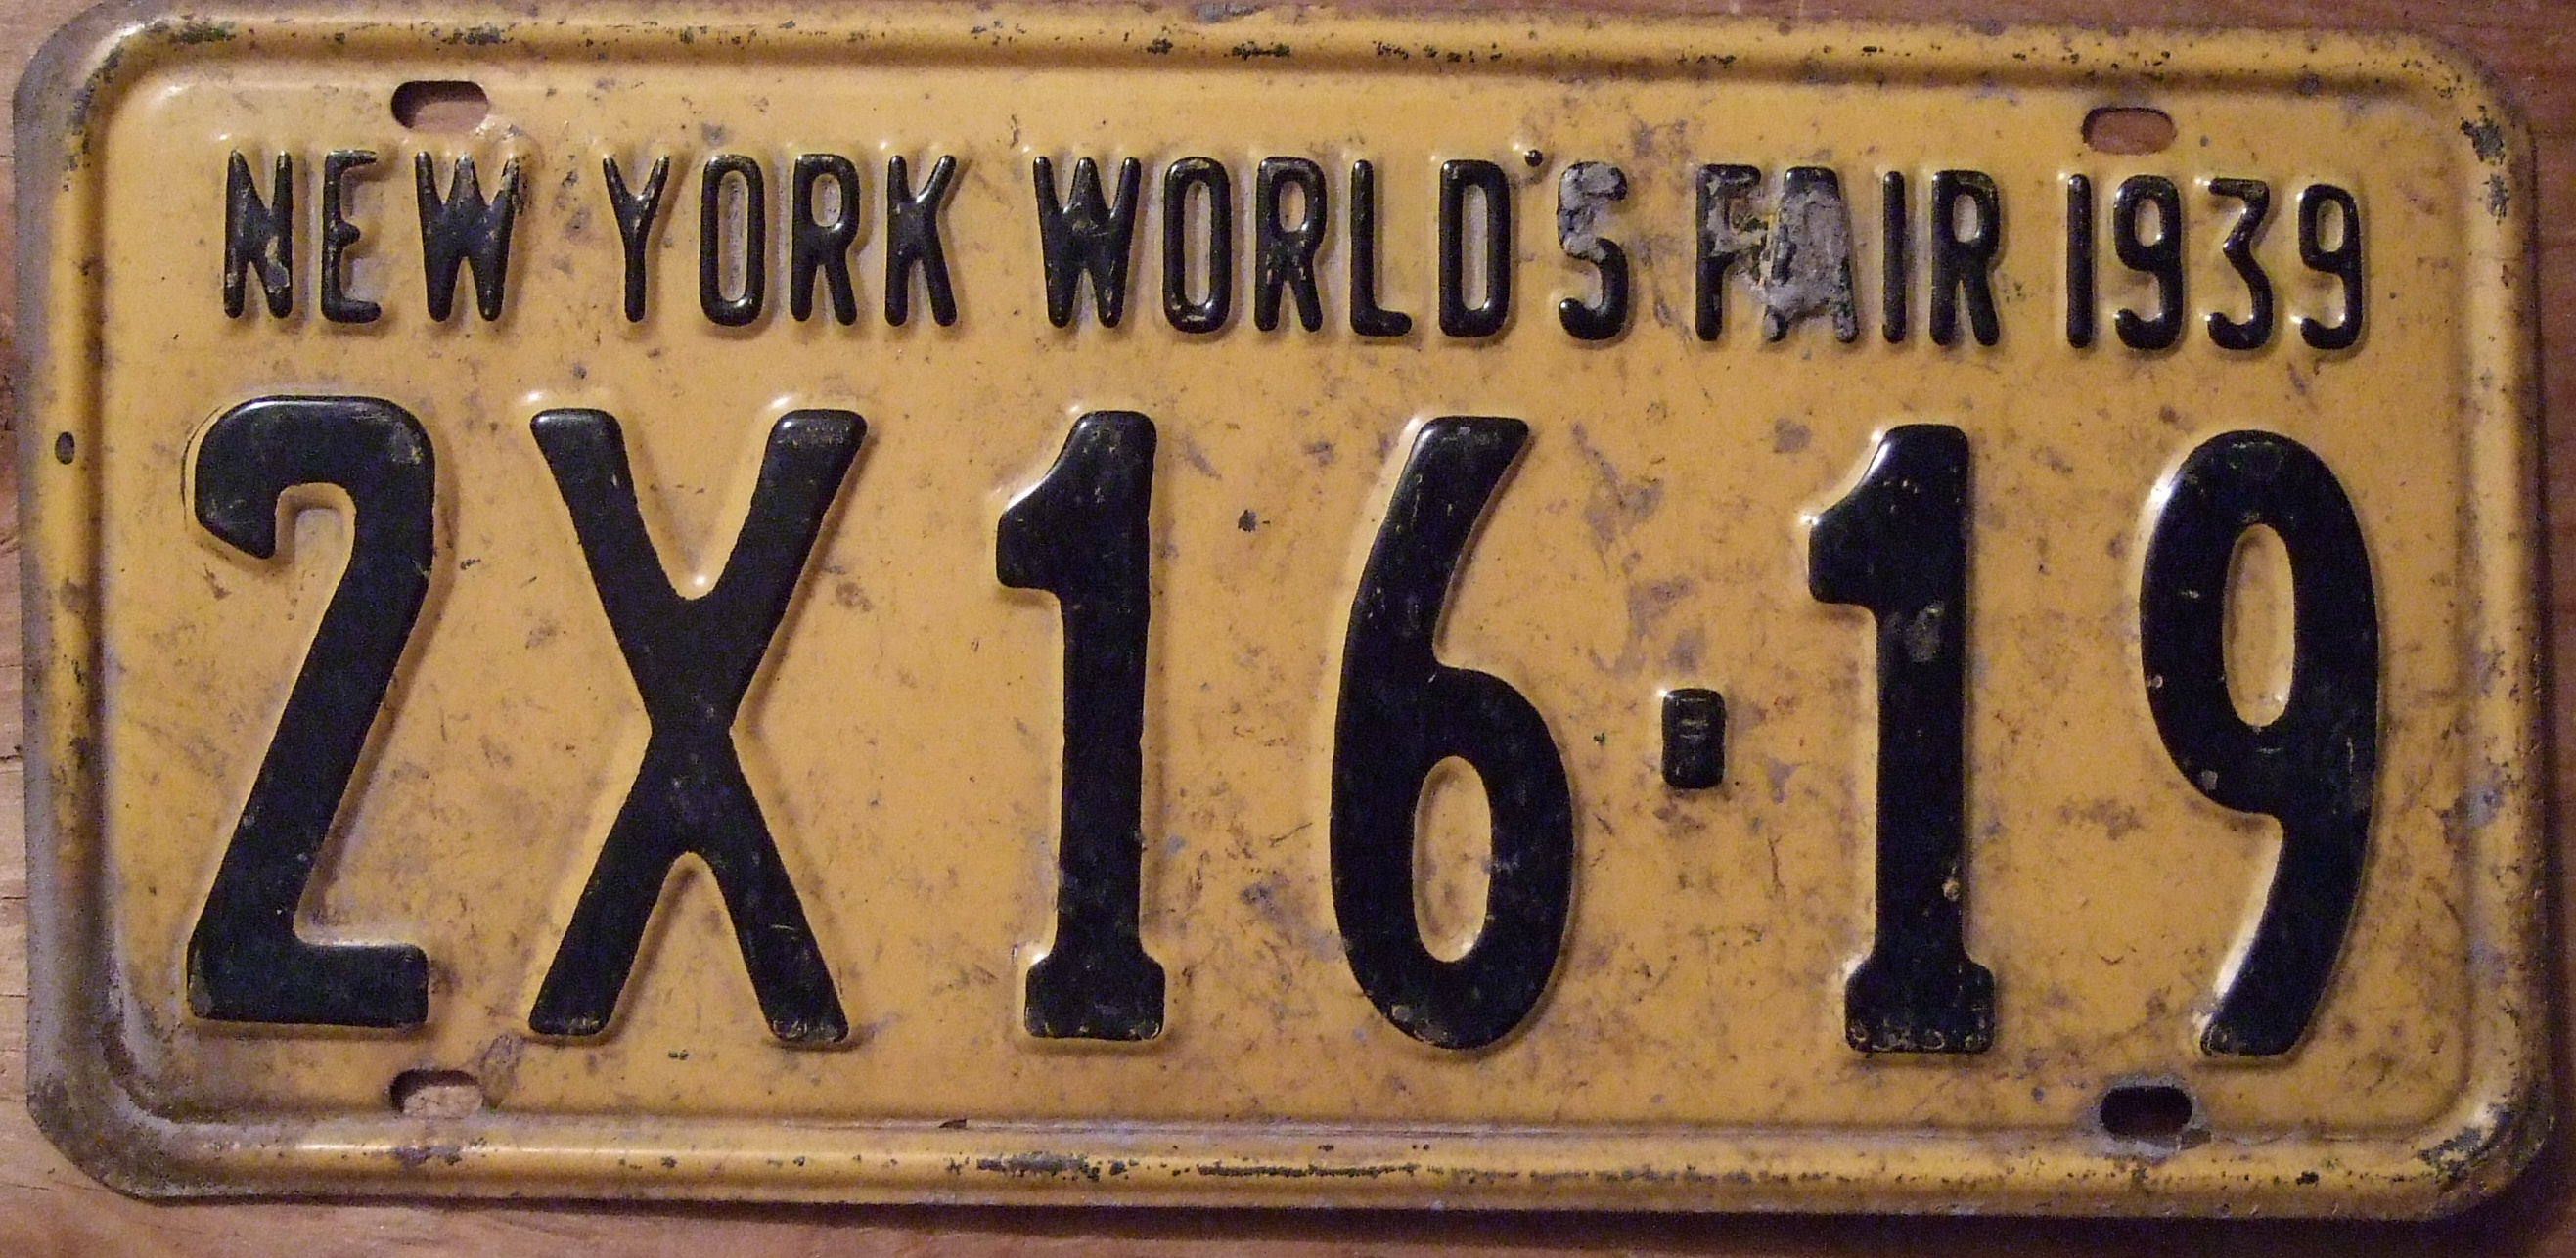 file new york 1939 license plate with new york world 39 s. Black Bedroom Furniture Sets. Home Design Ideas